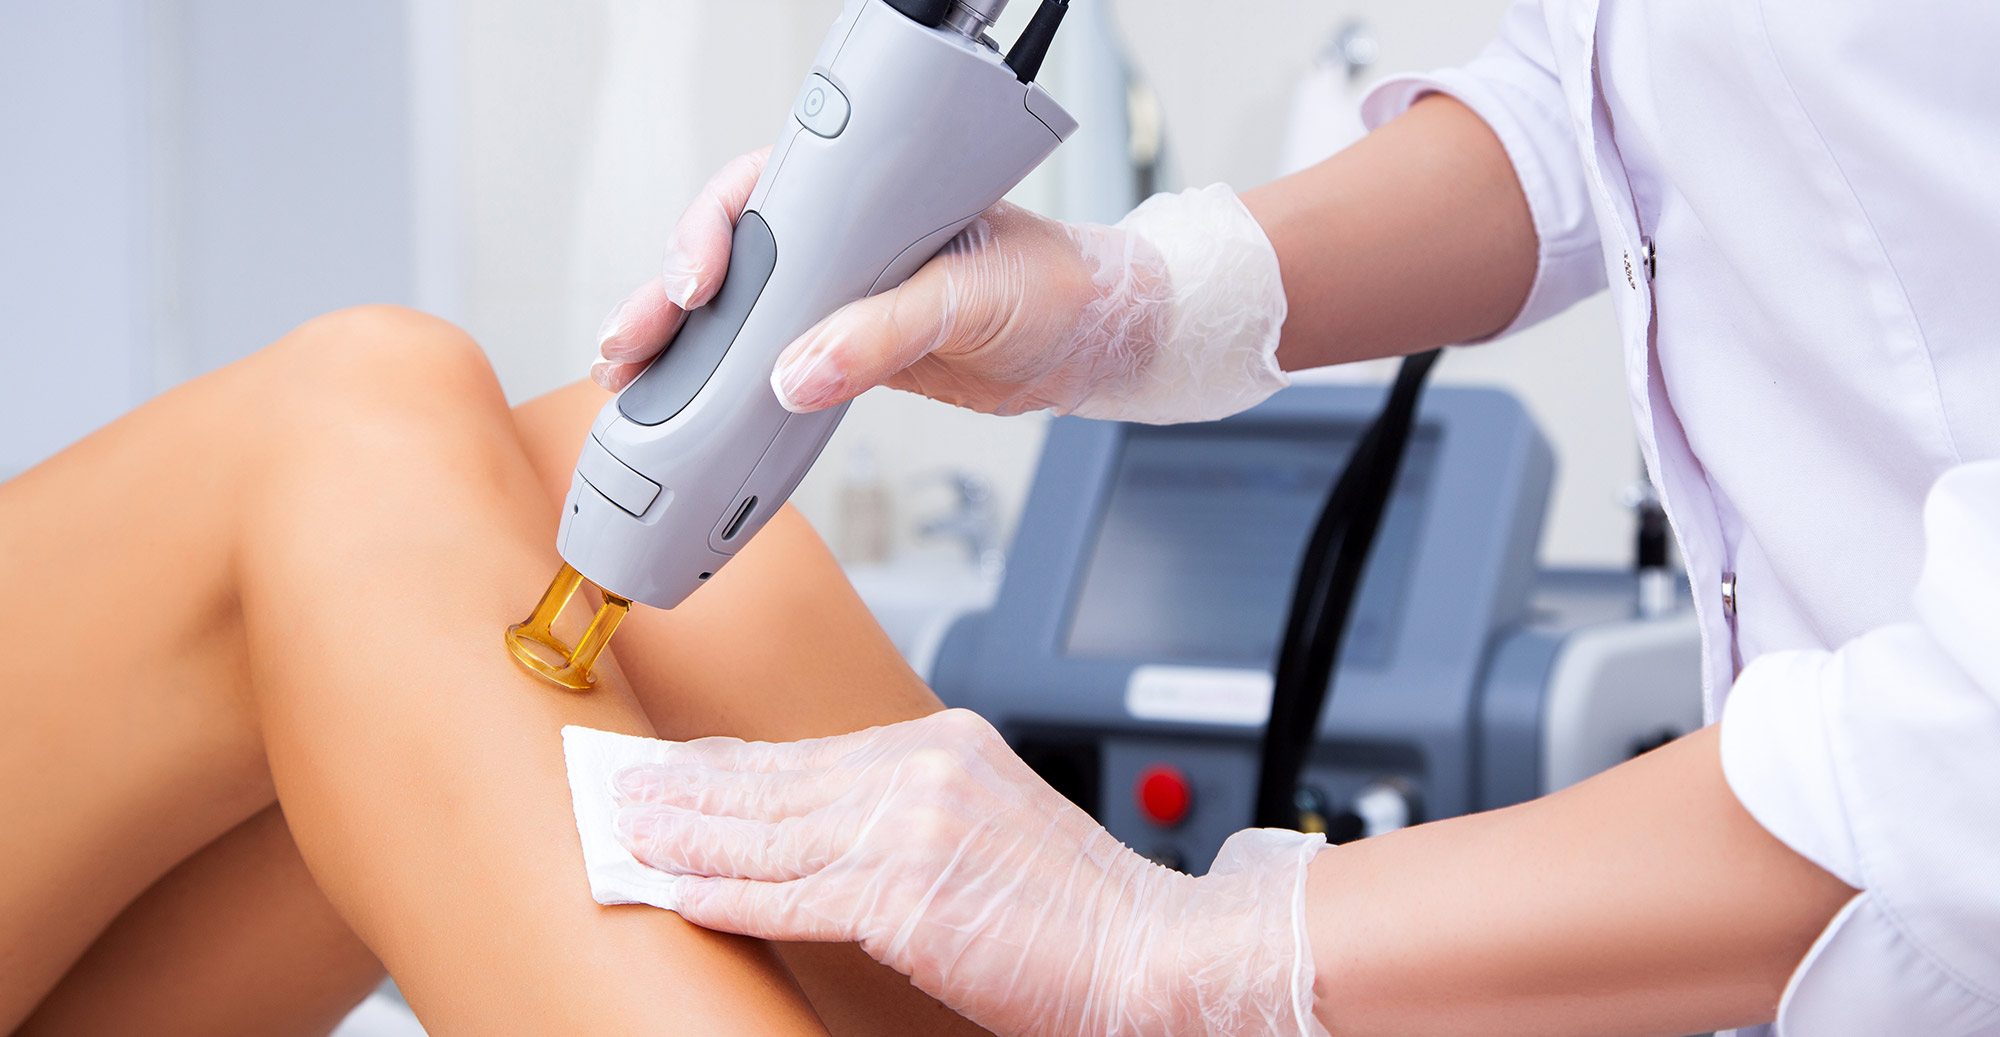 Virtually Painless Laser Hair Removal